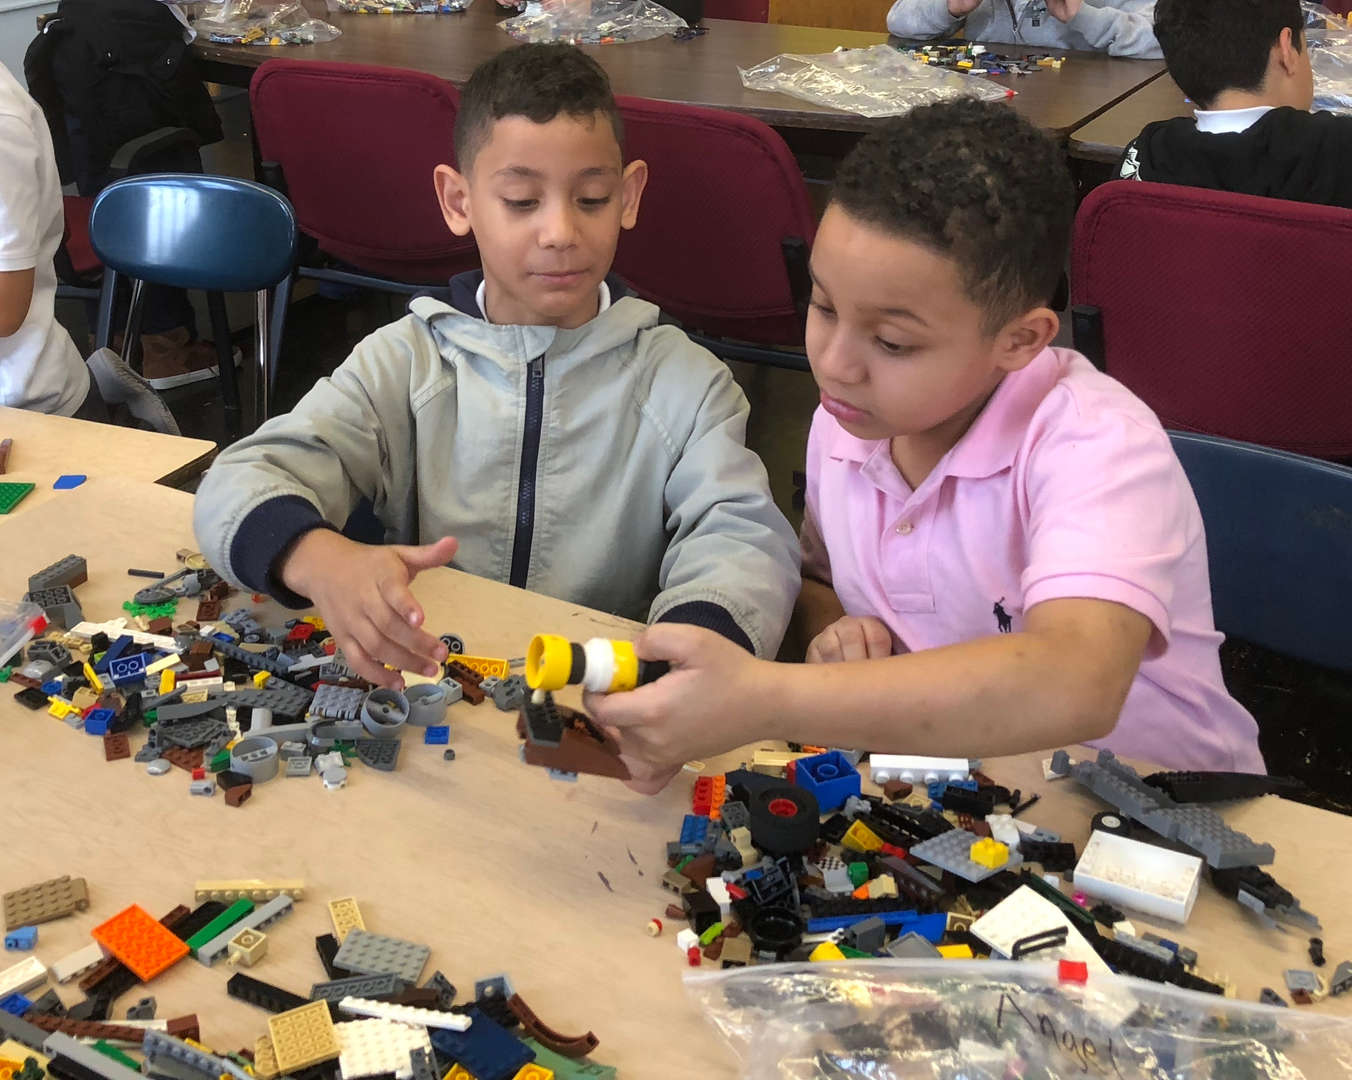 Members of the LEGO club building